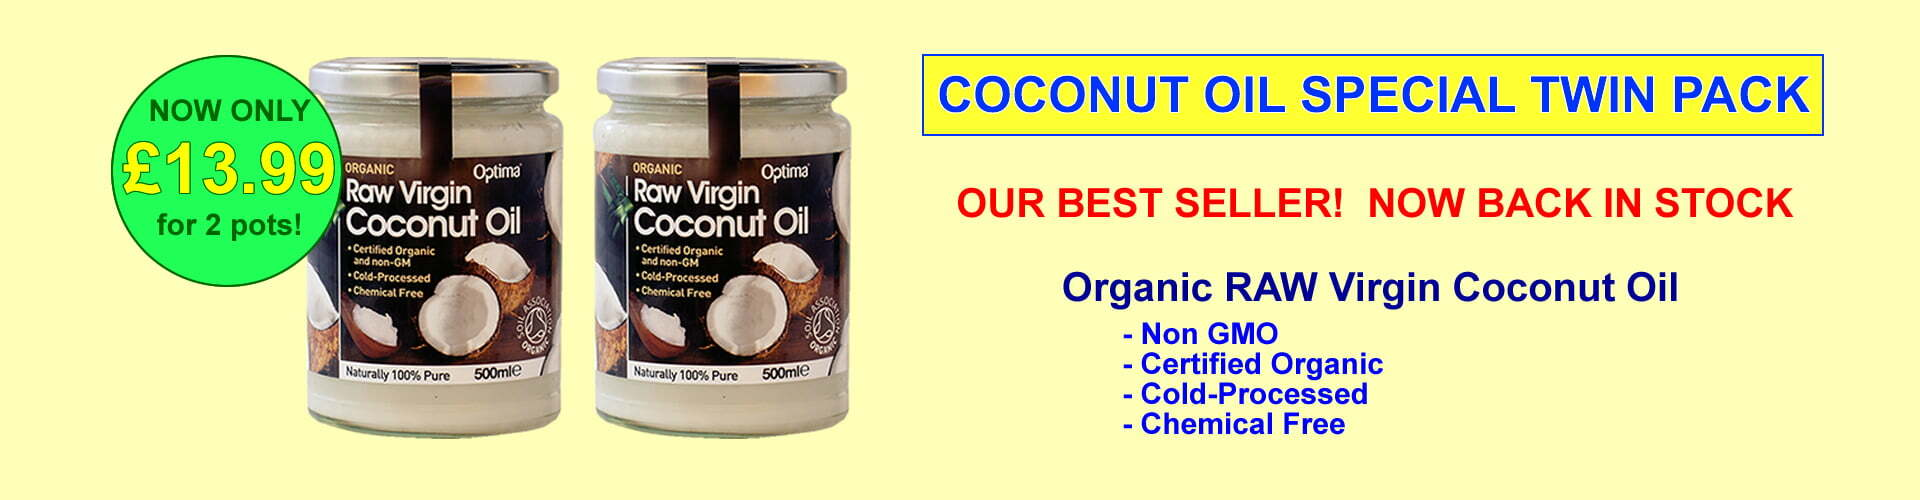 Our best selling Coconut Oil 2 pots of 500ml for only £13.99 plus delivery - Organic and RAW with Non GMO ingredients, this cold pressed Coconut Oil is ideal for cooking, using on your hair and body as a moisturiser!